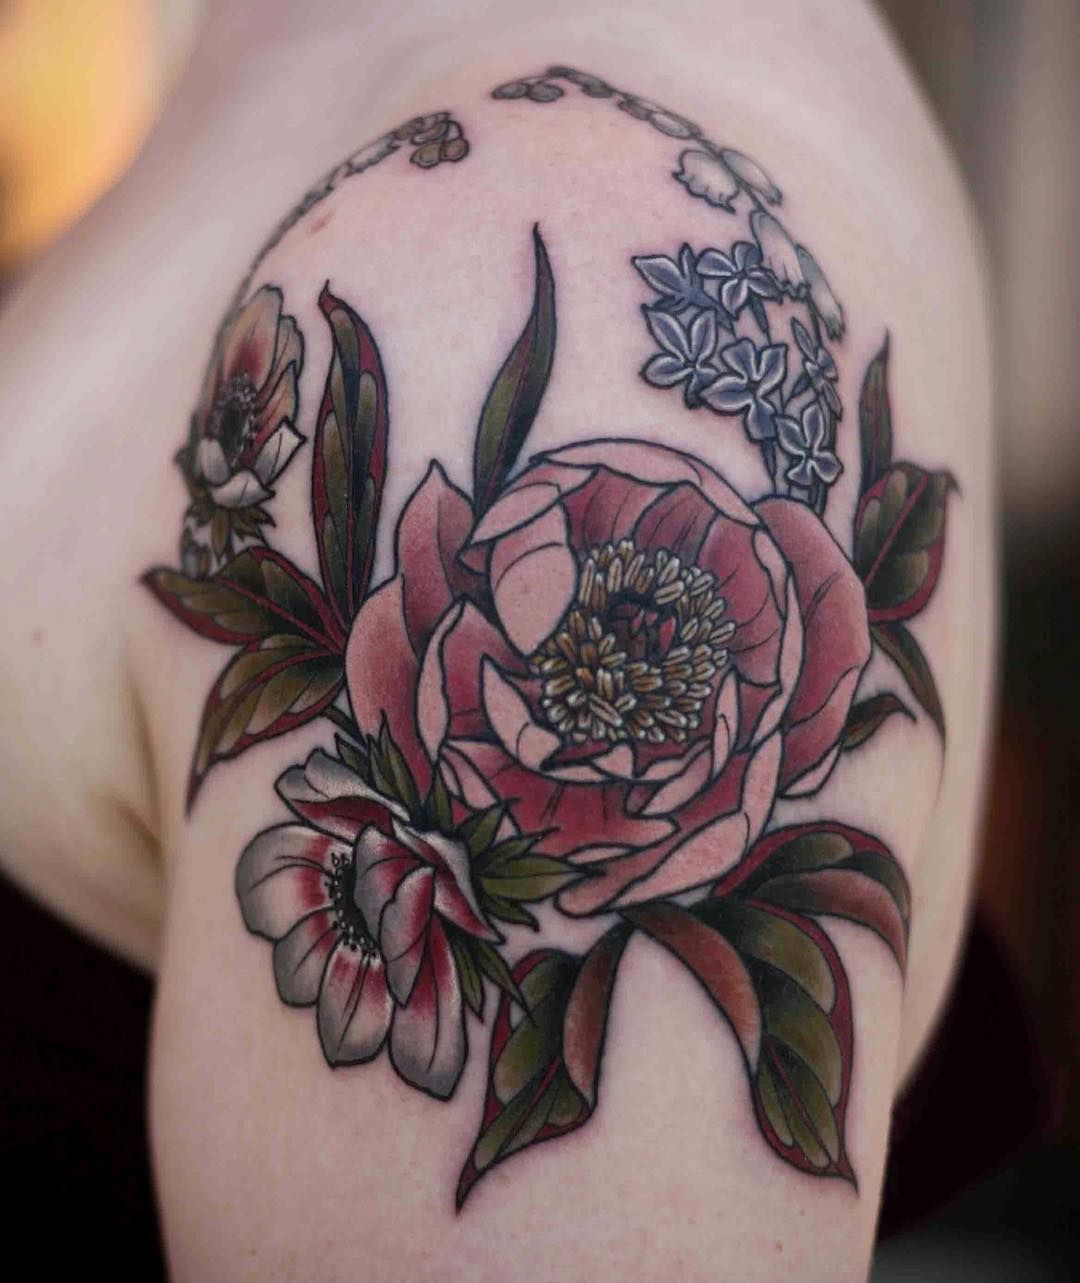 41+ Amazing Lily of the valley tattoo outline ideas